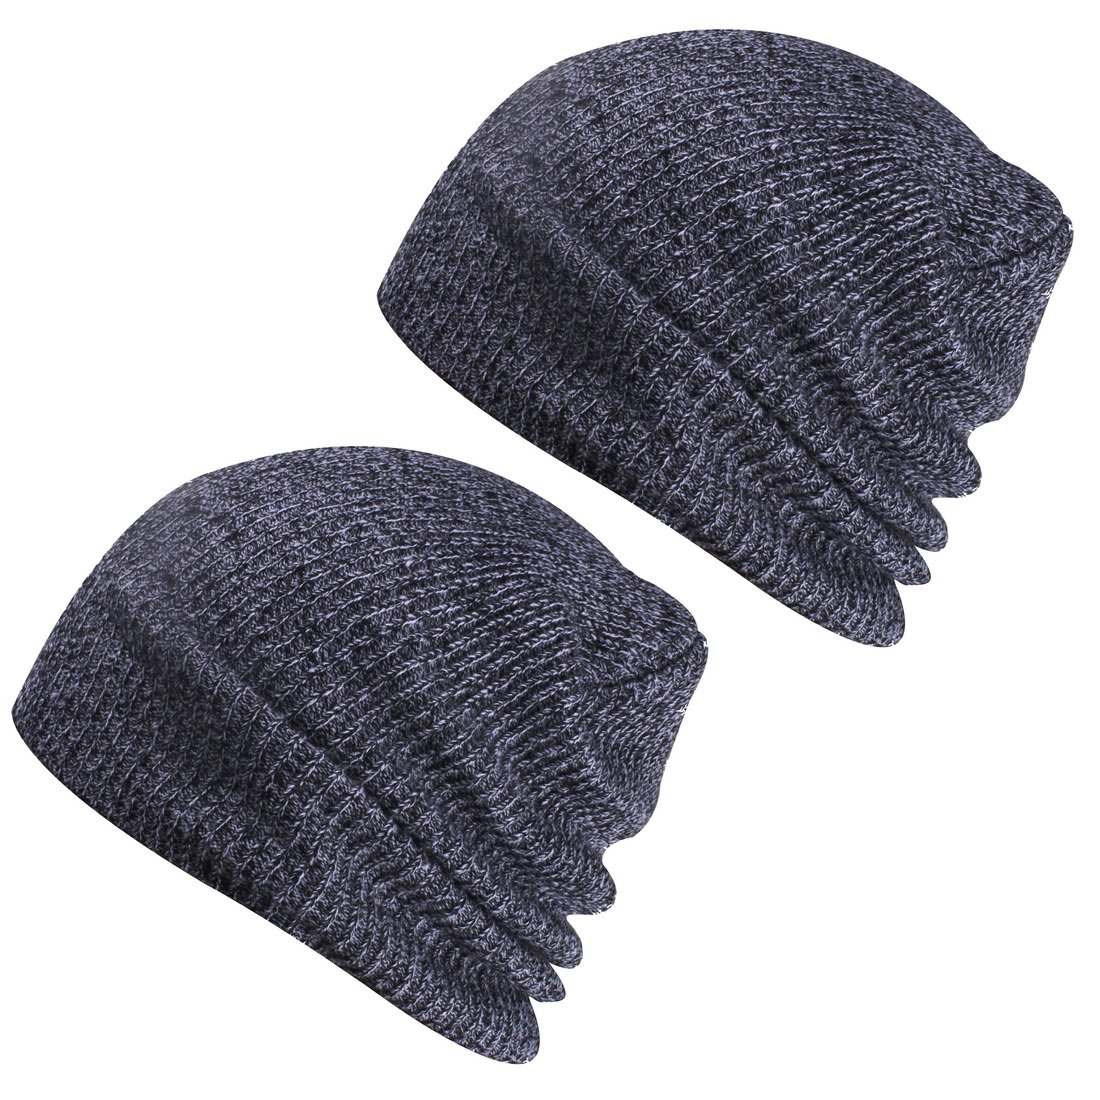 19c41c63372 The hat is specially designed to give you a style that will keep your head  warm.We re so sure you ll love this Beanie.